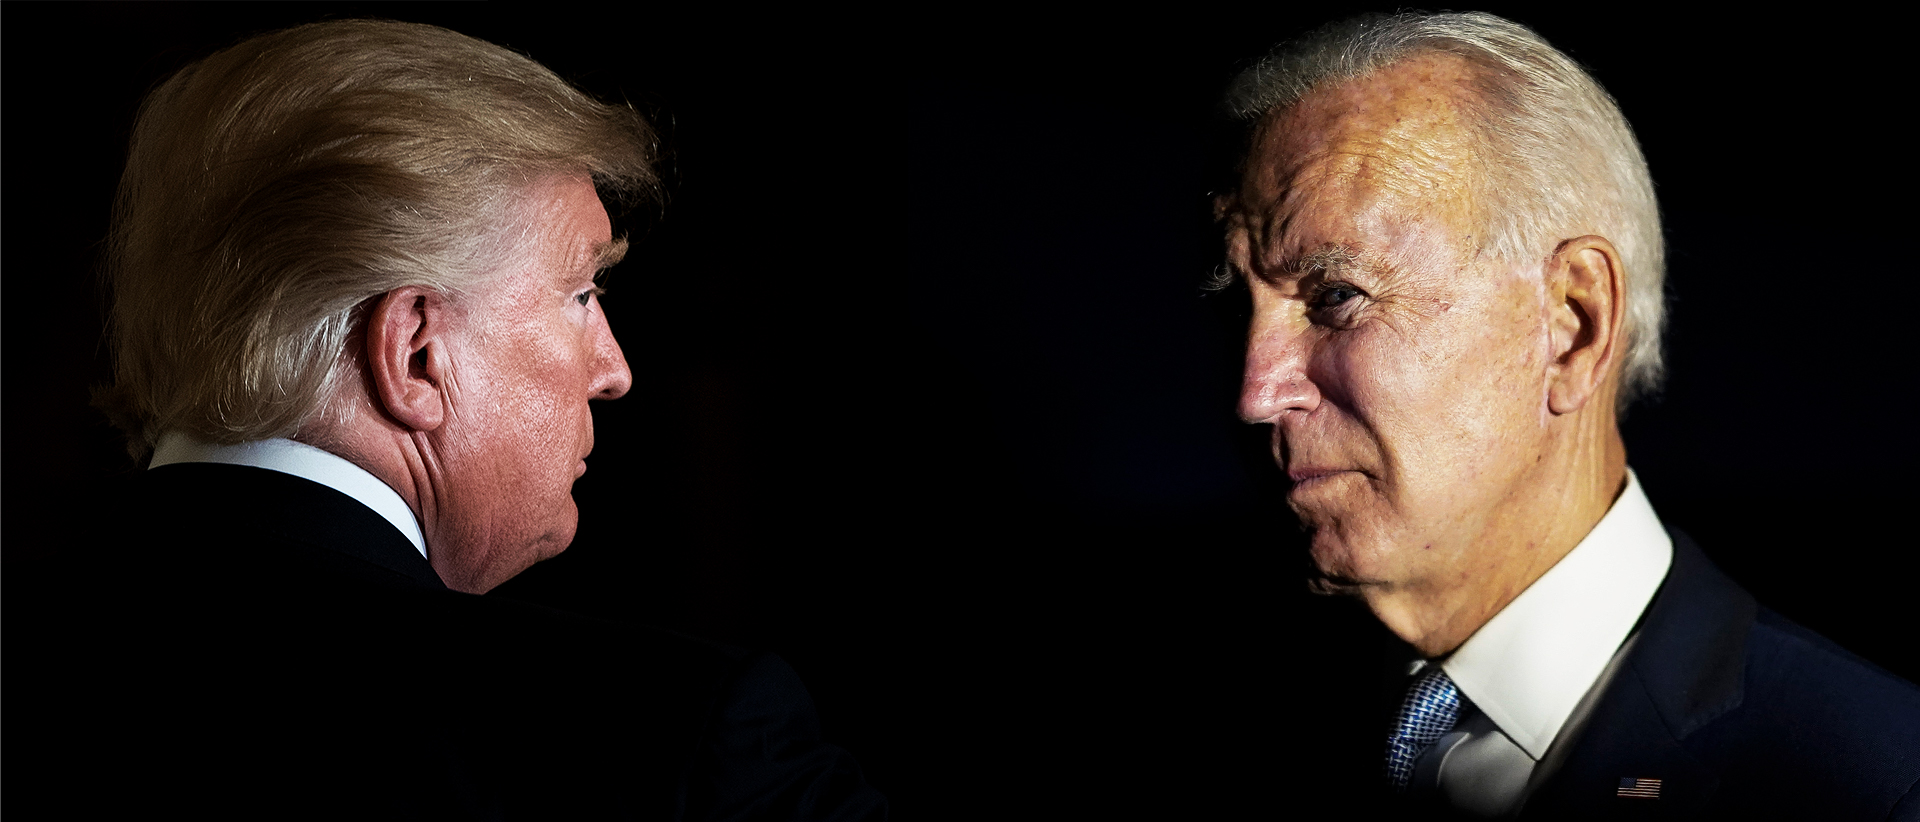 Donald Trump, Joe Biden (Getty Images, Daily Caller)